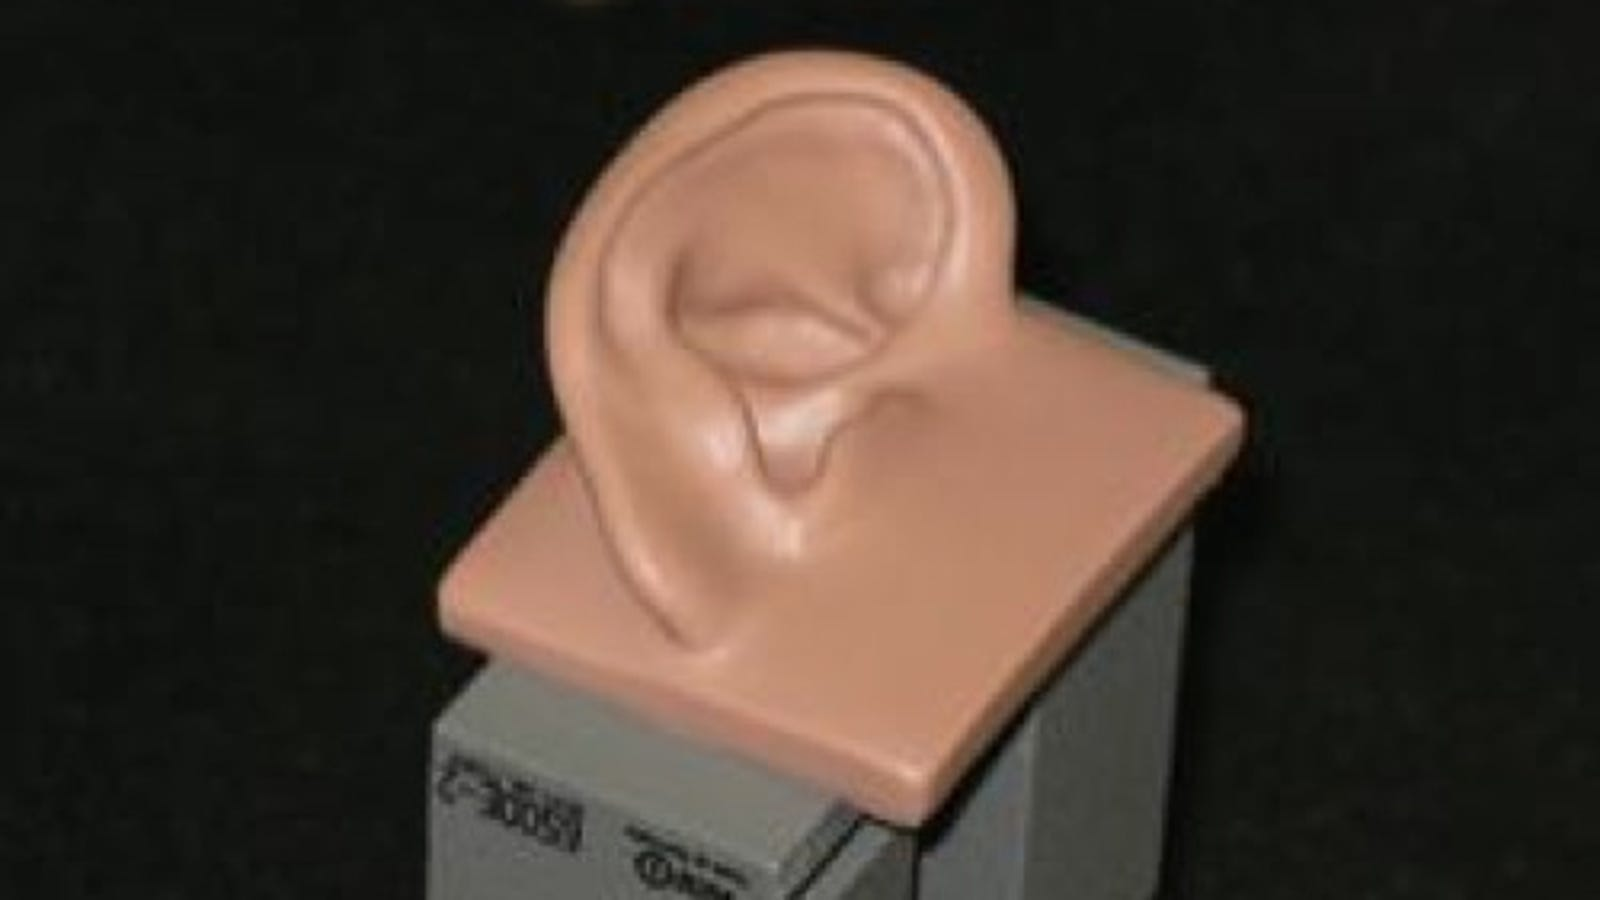 anker waterproof earbuds - Researchers Claim They've Created the Perfect 3D Human Ear Model